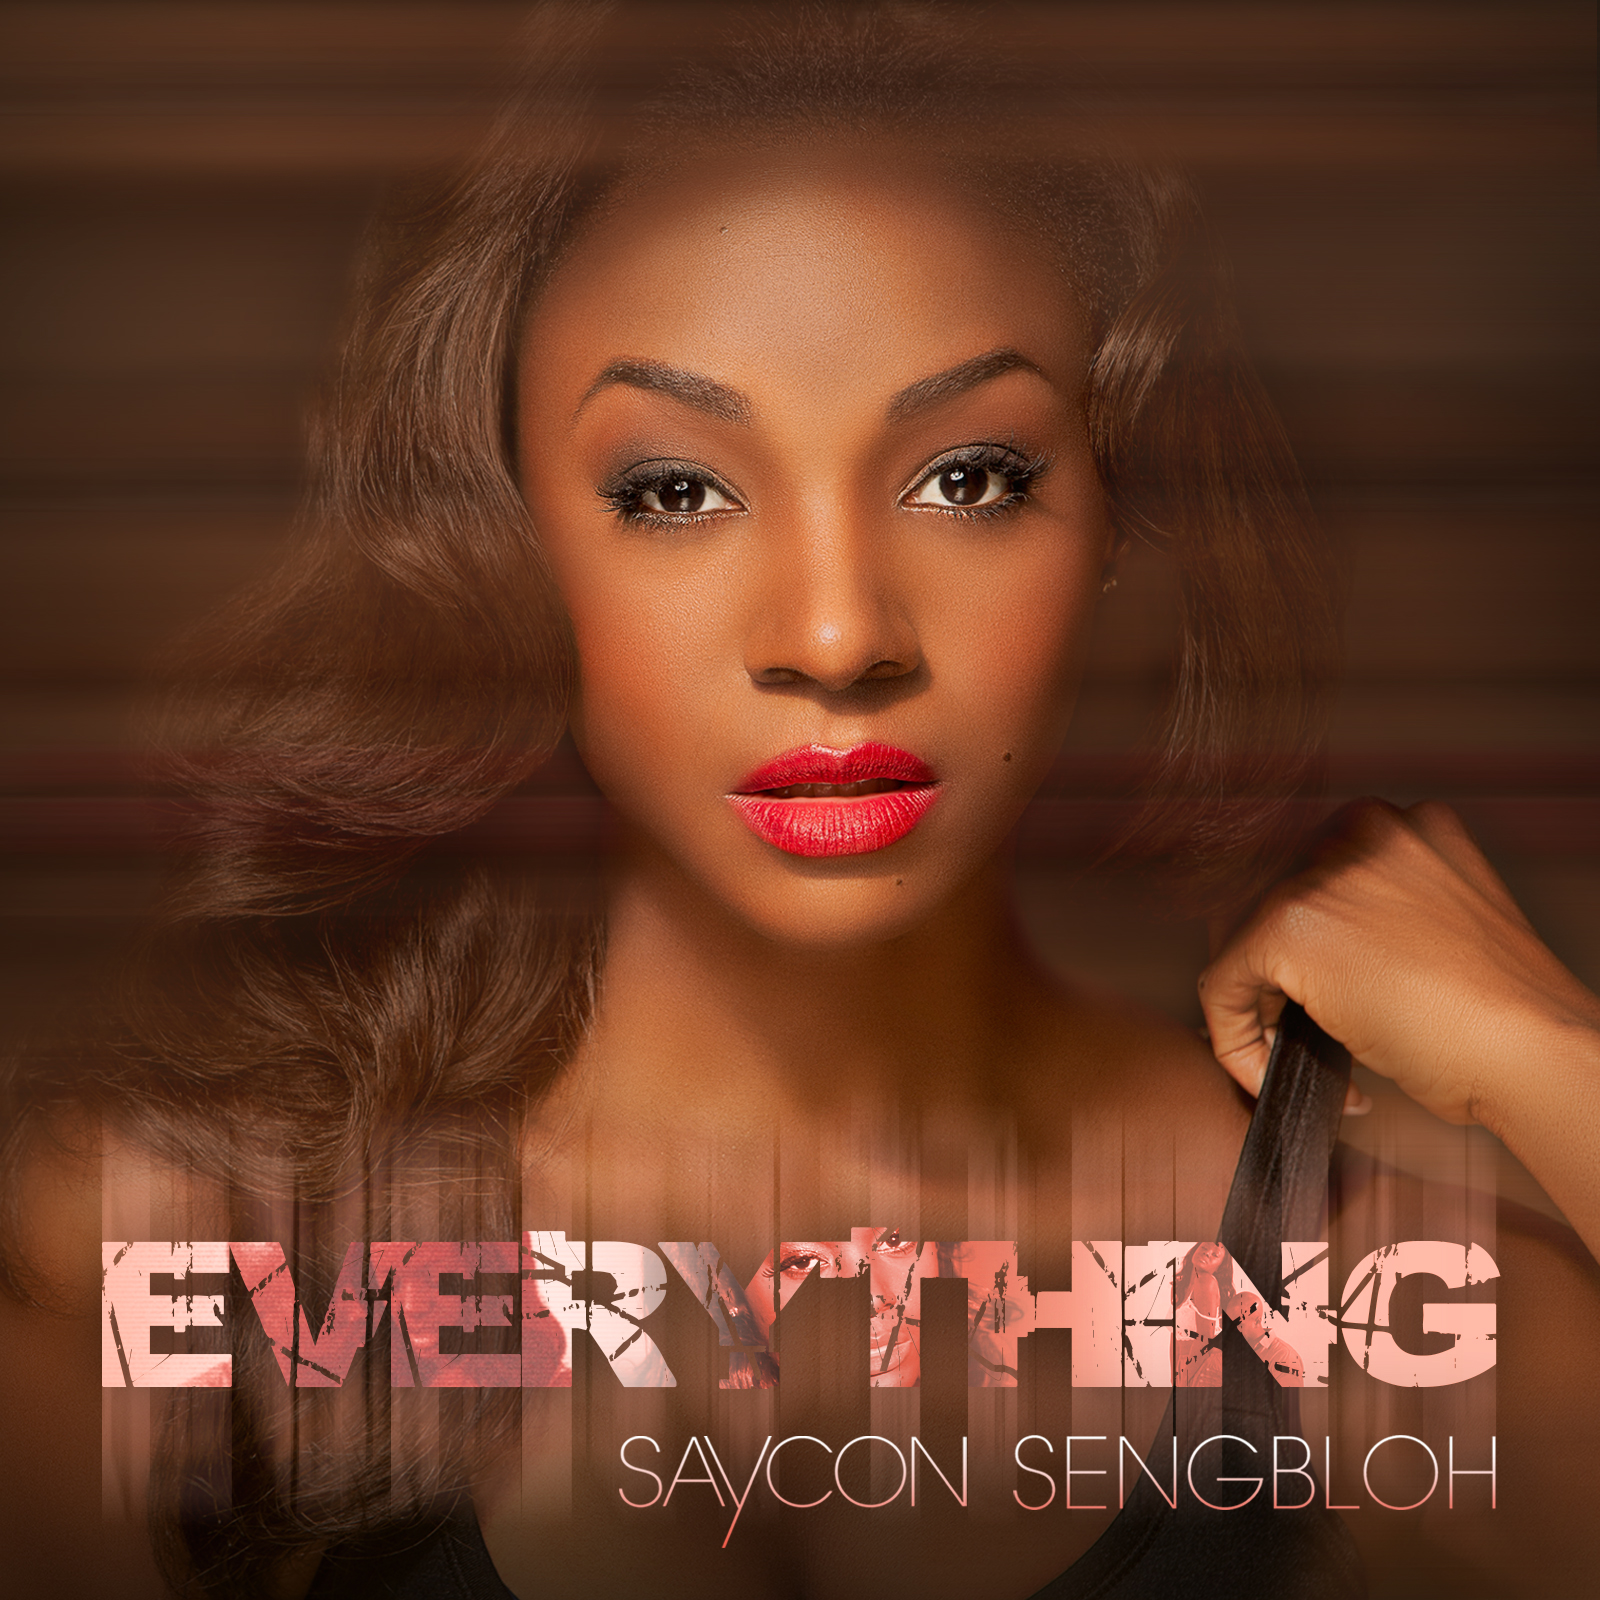 Download Everything by Saycon online now